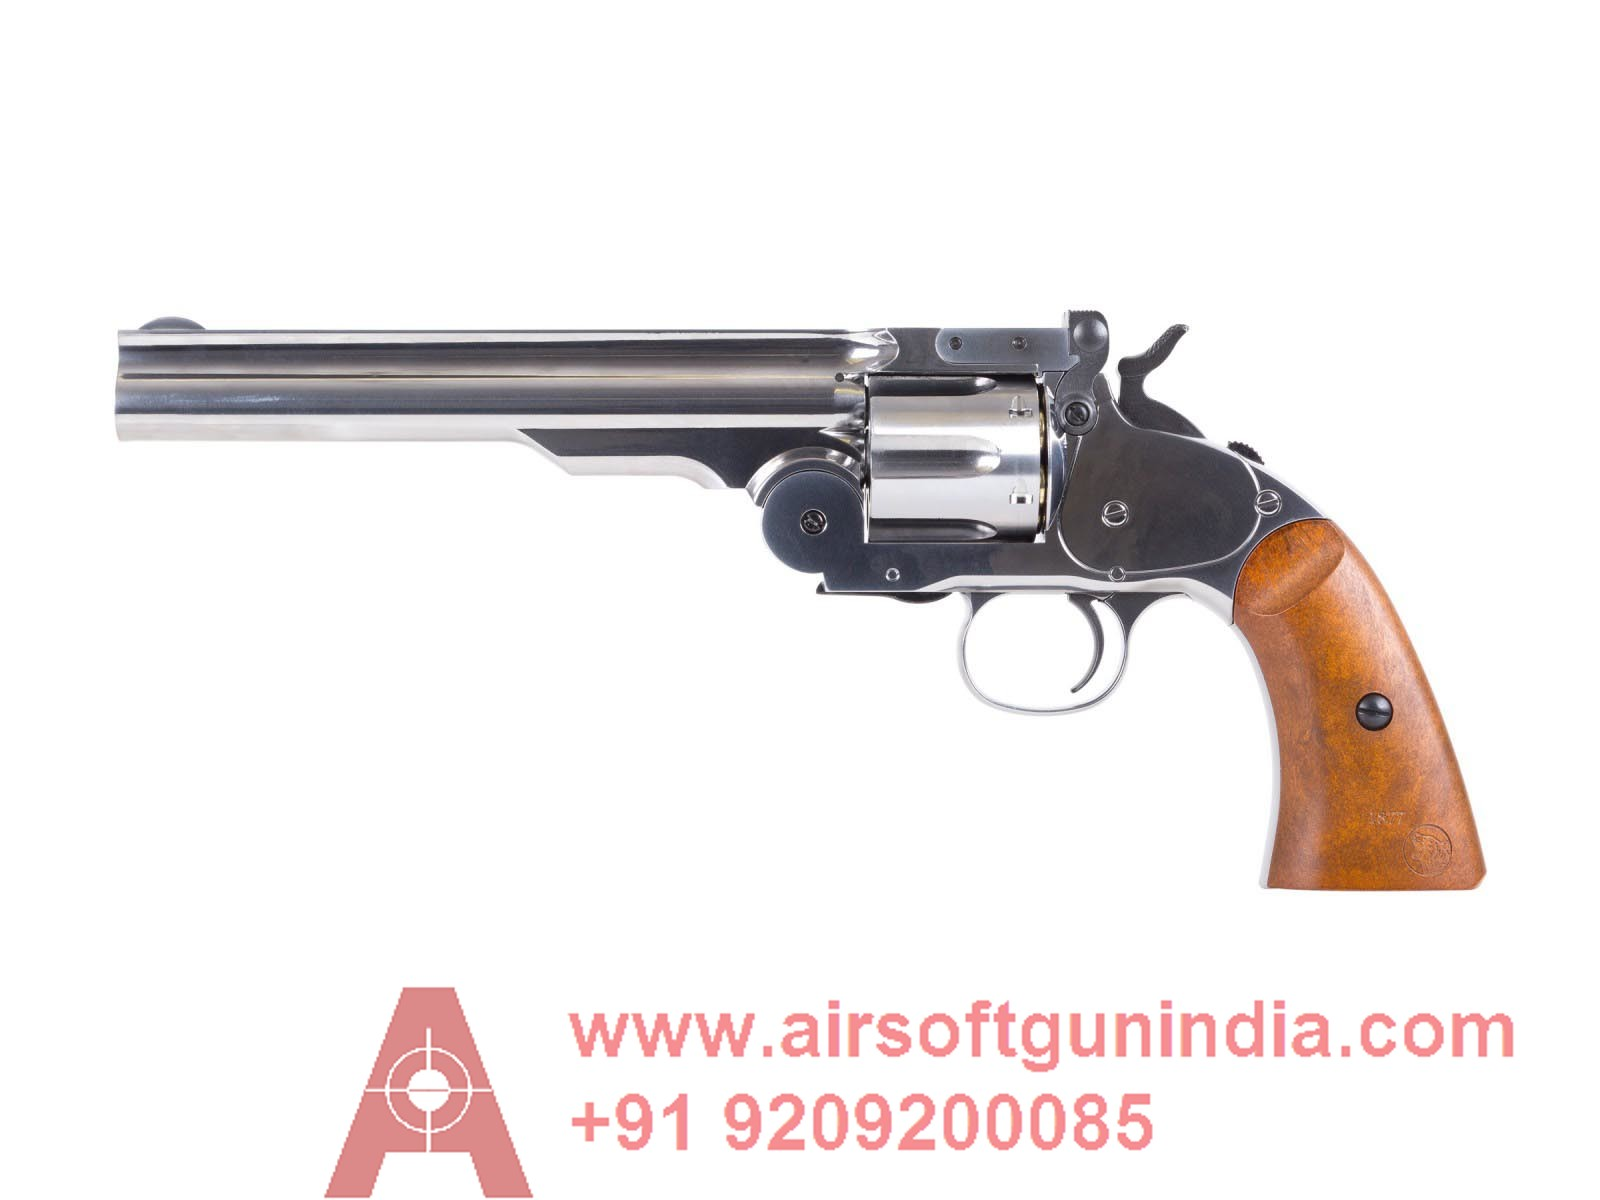 Schofield No3 Nickel Dual Ammo Co2 Bb And Pellet Revolver By Airsoft Gun India